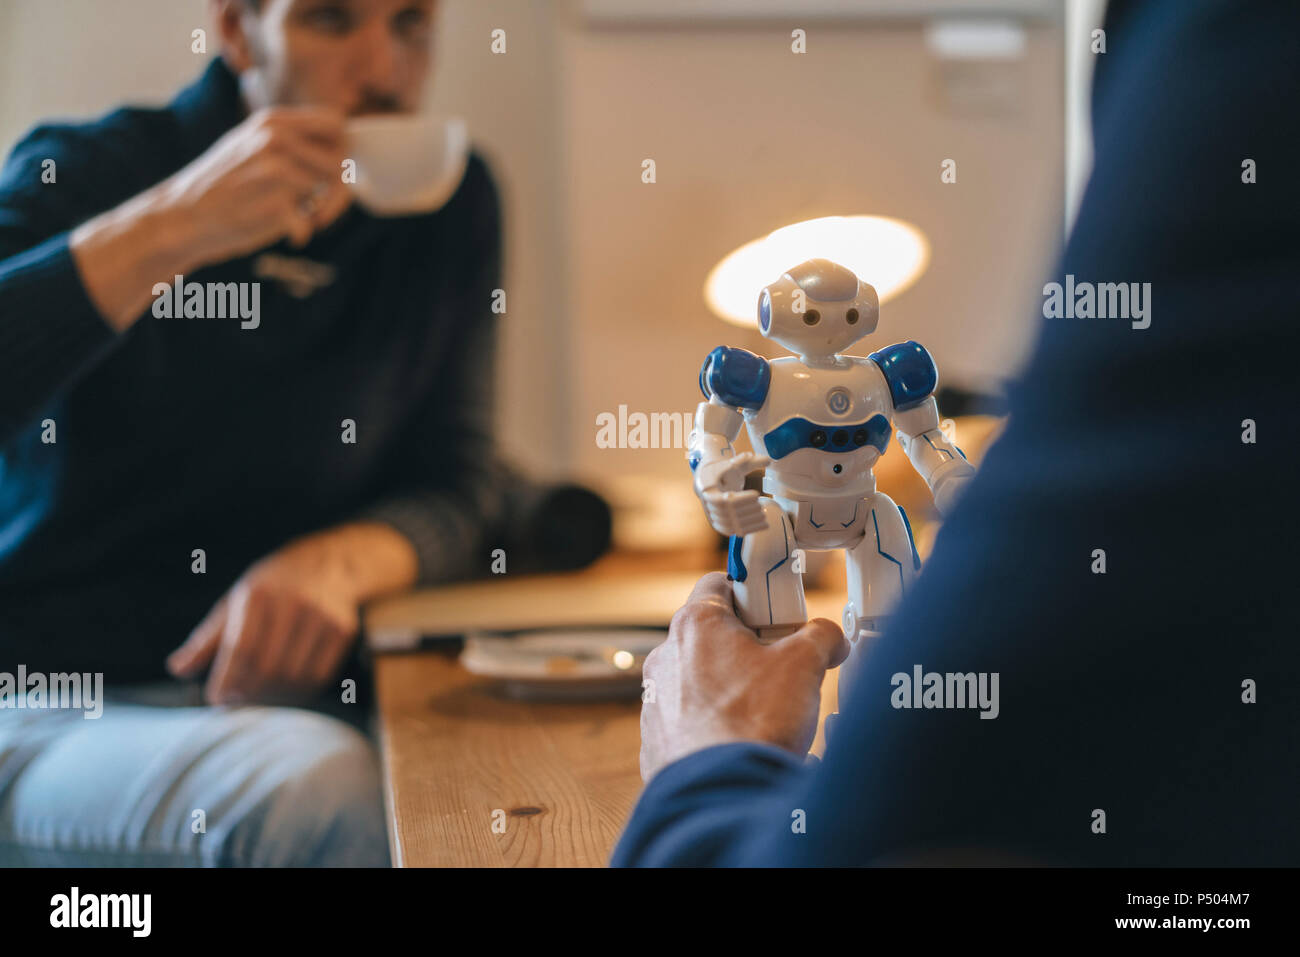 Two men and robot on table - Stock Image